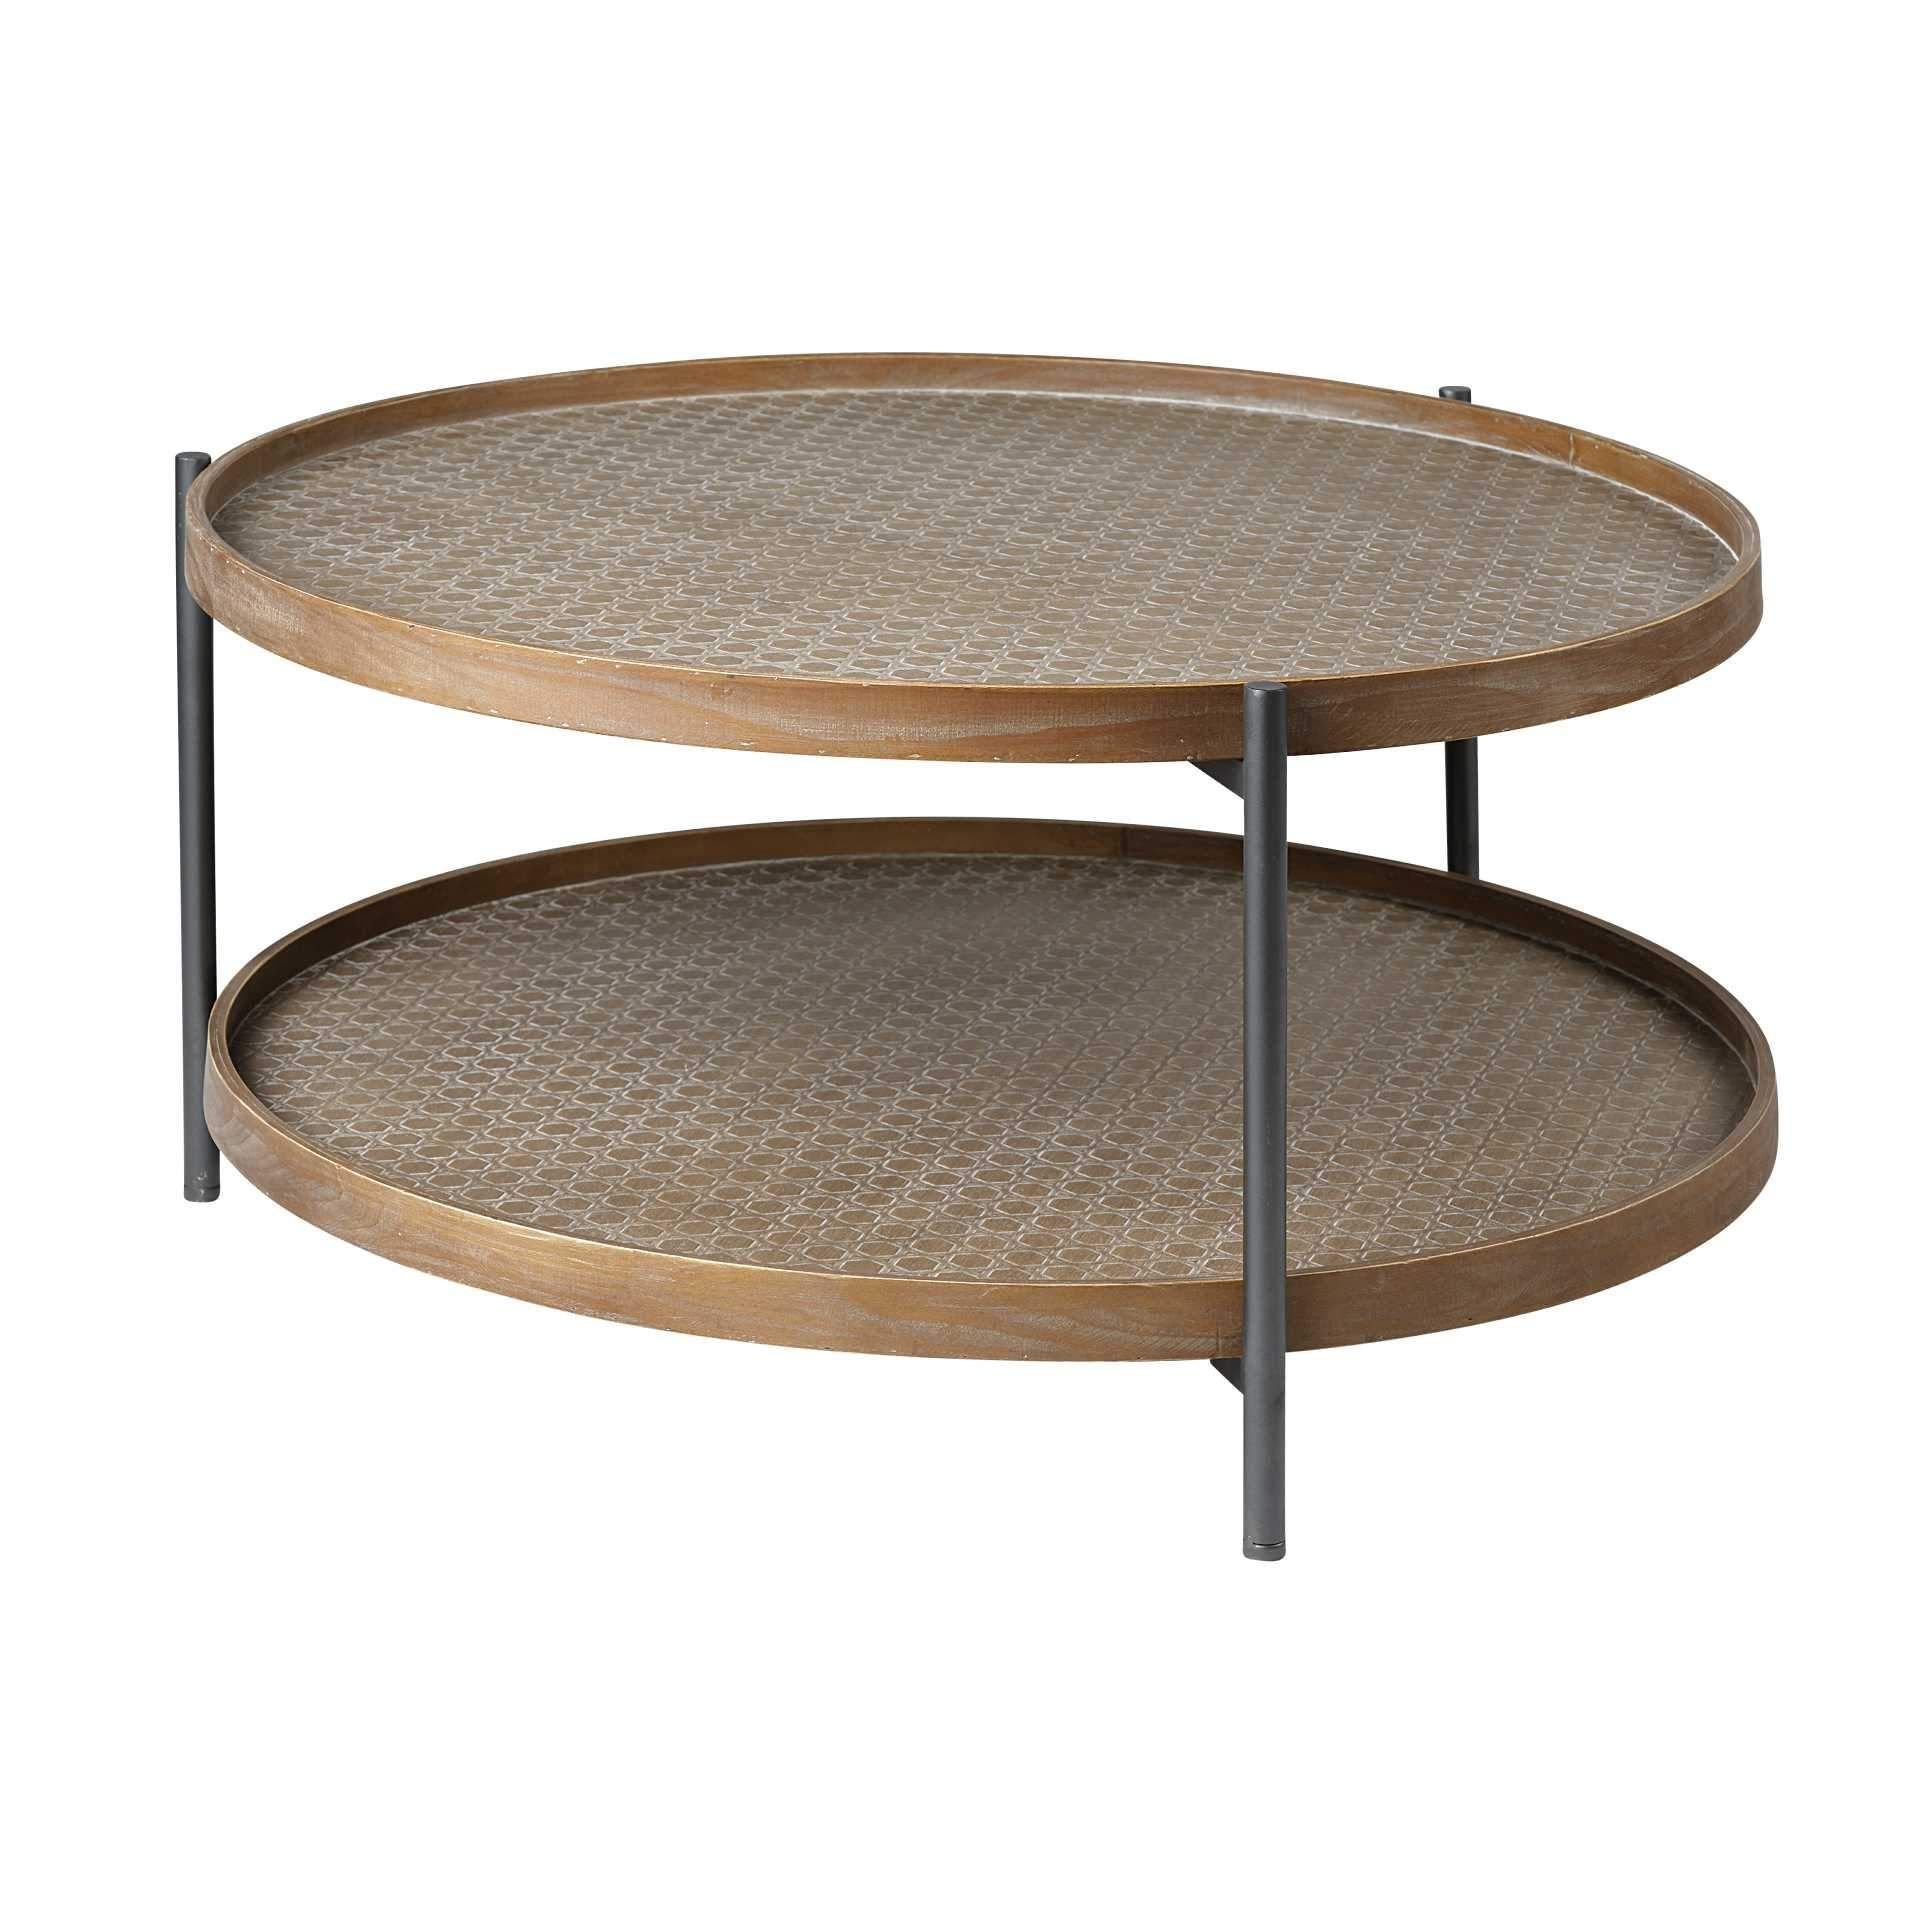 33 Round Black Wood And Metal Frame Two Tier Coffee Table Coffee Table Wood Hexagon Coffee Table Round Wood Coffee Table [ 1920 x 1920 Pixel ]